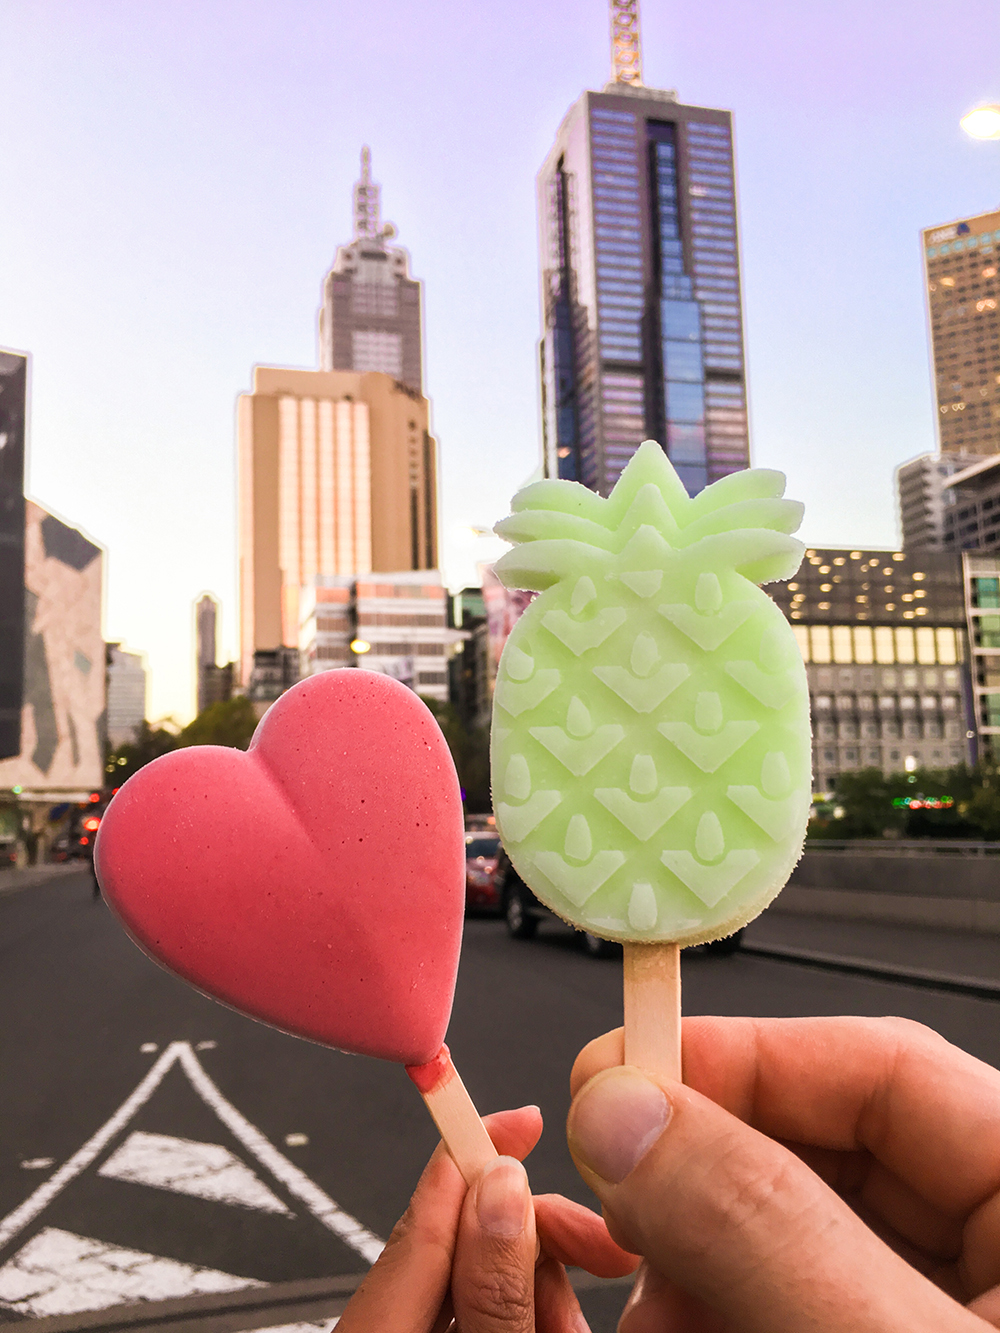 Ice Cream Time Popstic-Melbourne+by+hello+miss+may+must+eats+good+food+cheap+eat